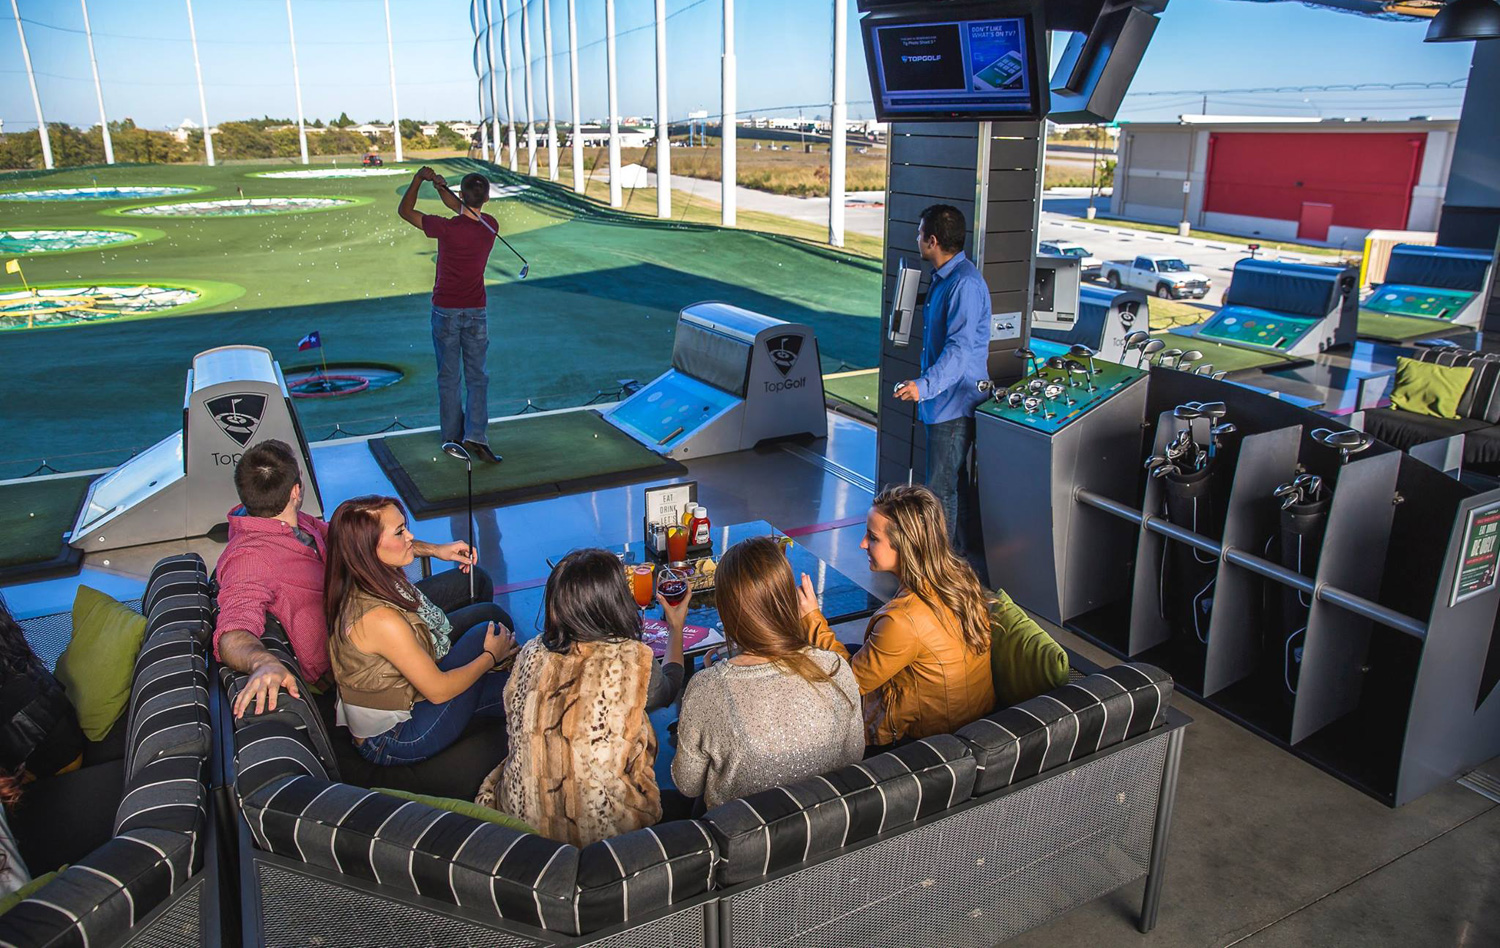 With 100 hitting bays in three stories, state-of-the-art technology and outstanding food, TopGolf is a hit even for people who have never played golf. - TopGolf Alpharetta